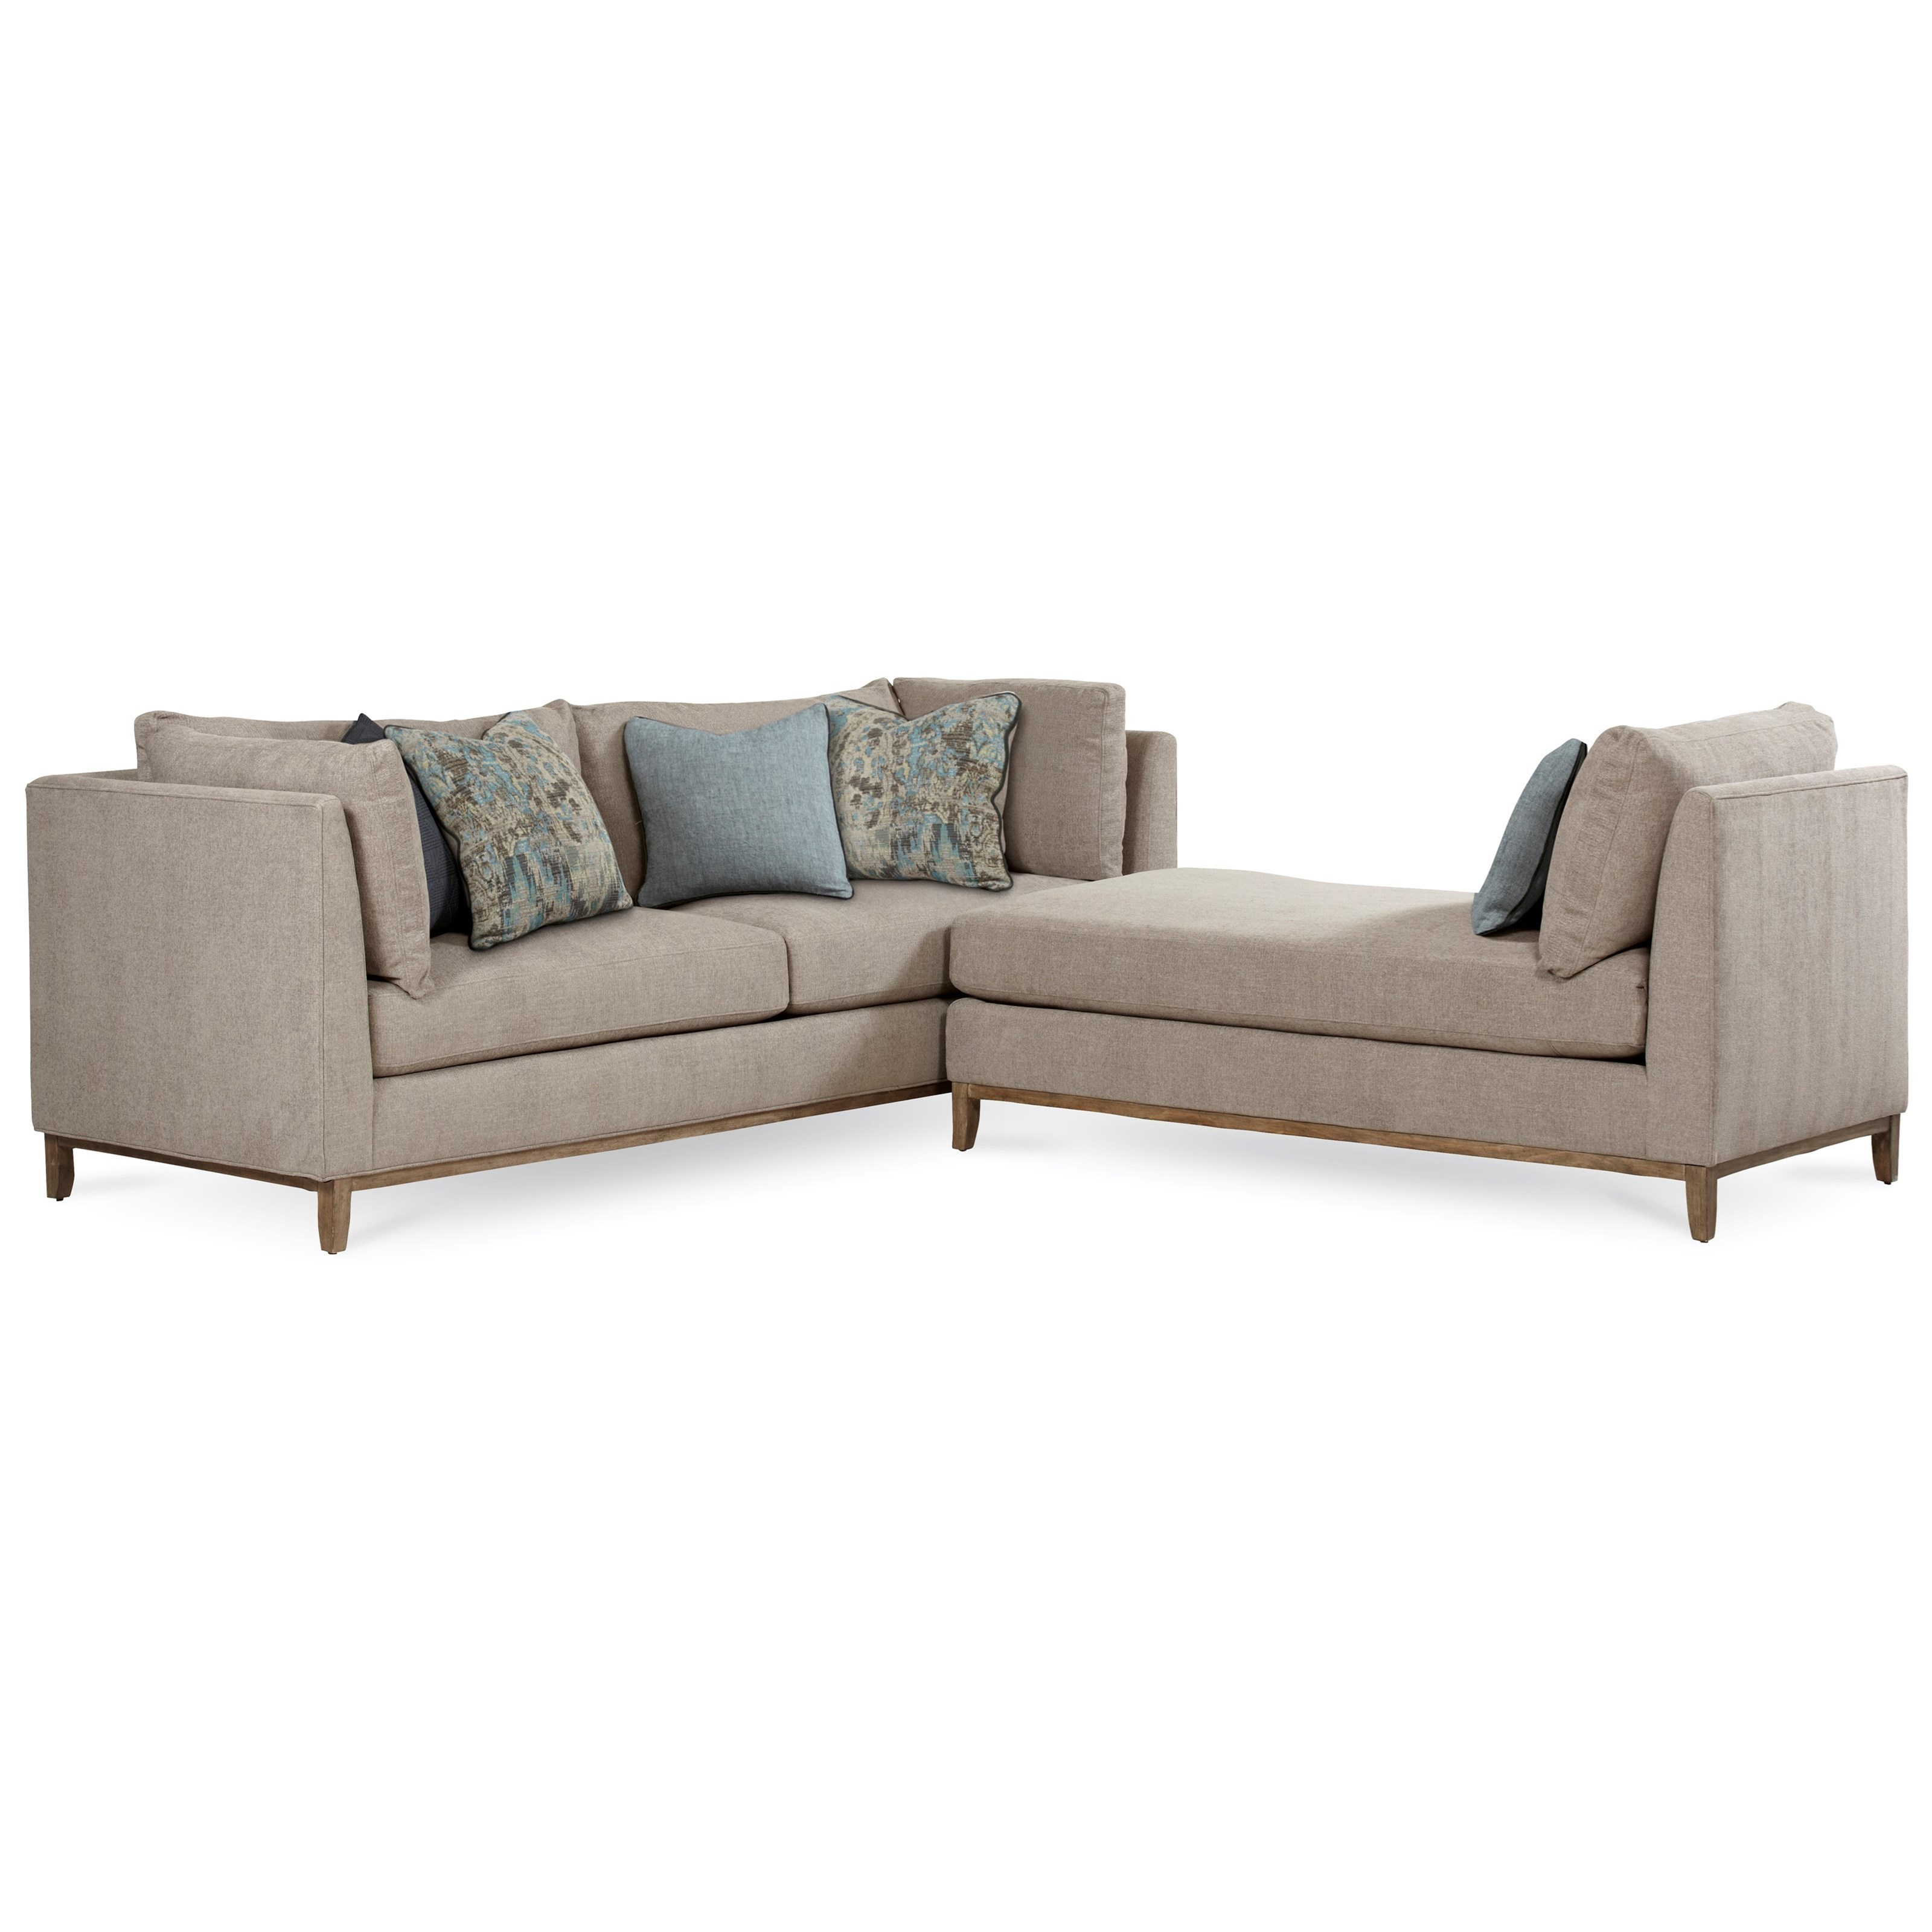 Belfort Signature Urban Treasures 2-Piece Modular Chaplin Sectional - Item Number: 523561-5001AA+523565